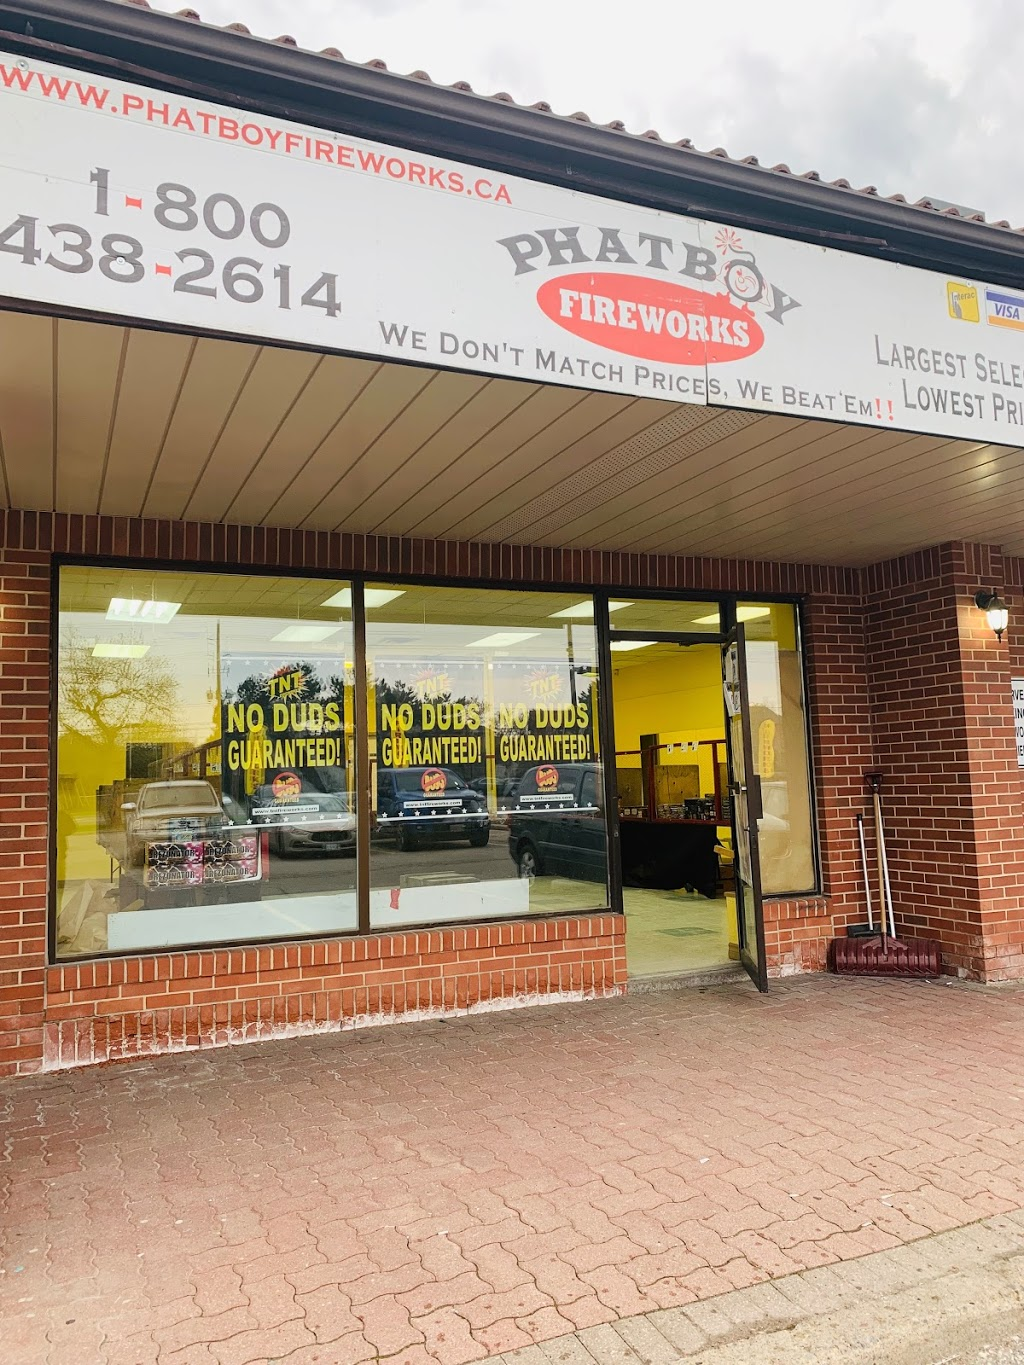 Phatboy Fireworks | store | 9300 Keele St, Maple, ON L6A 1P4, Canada | 8004382614 OR +1 800-438-2614